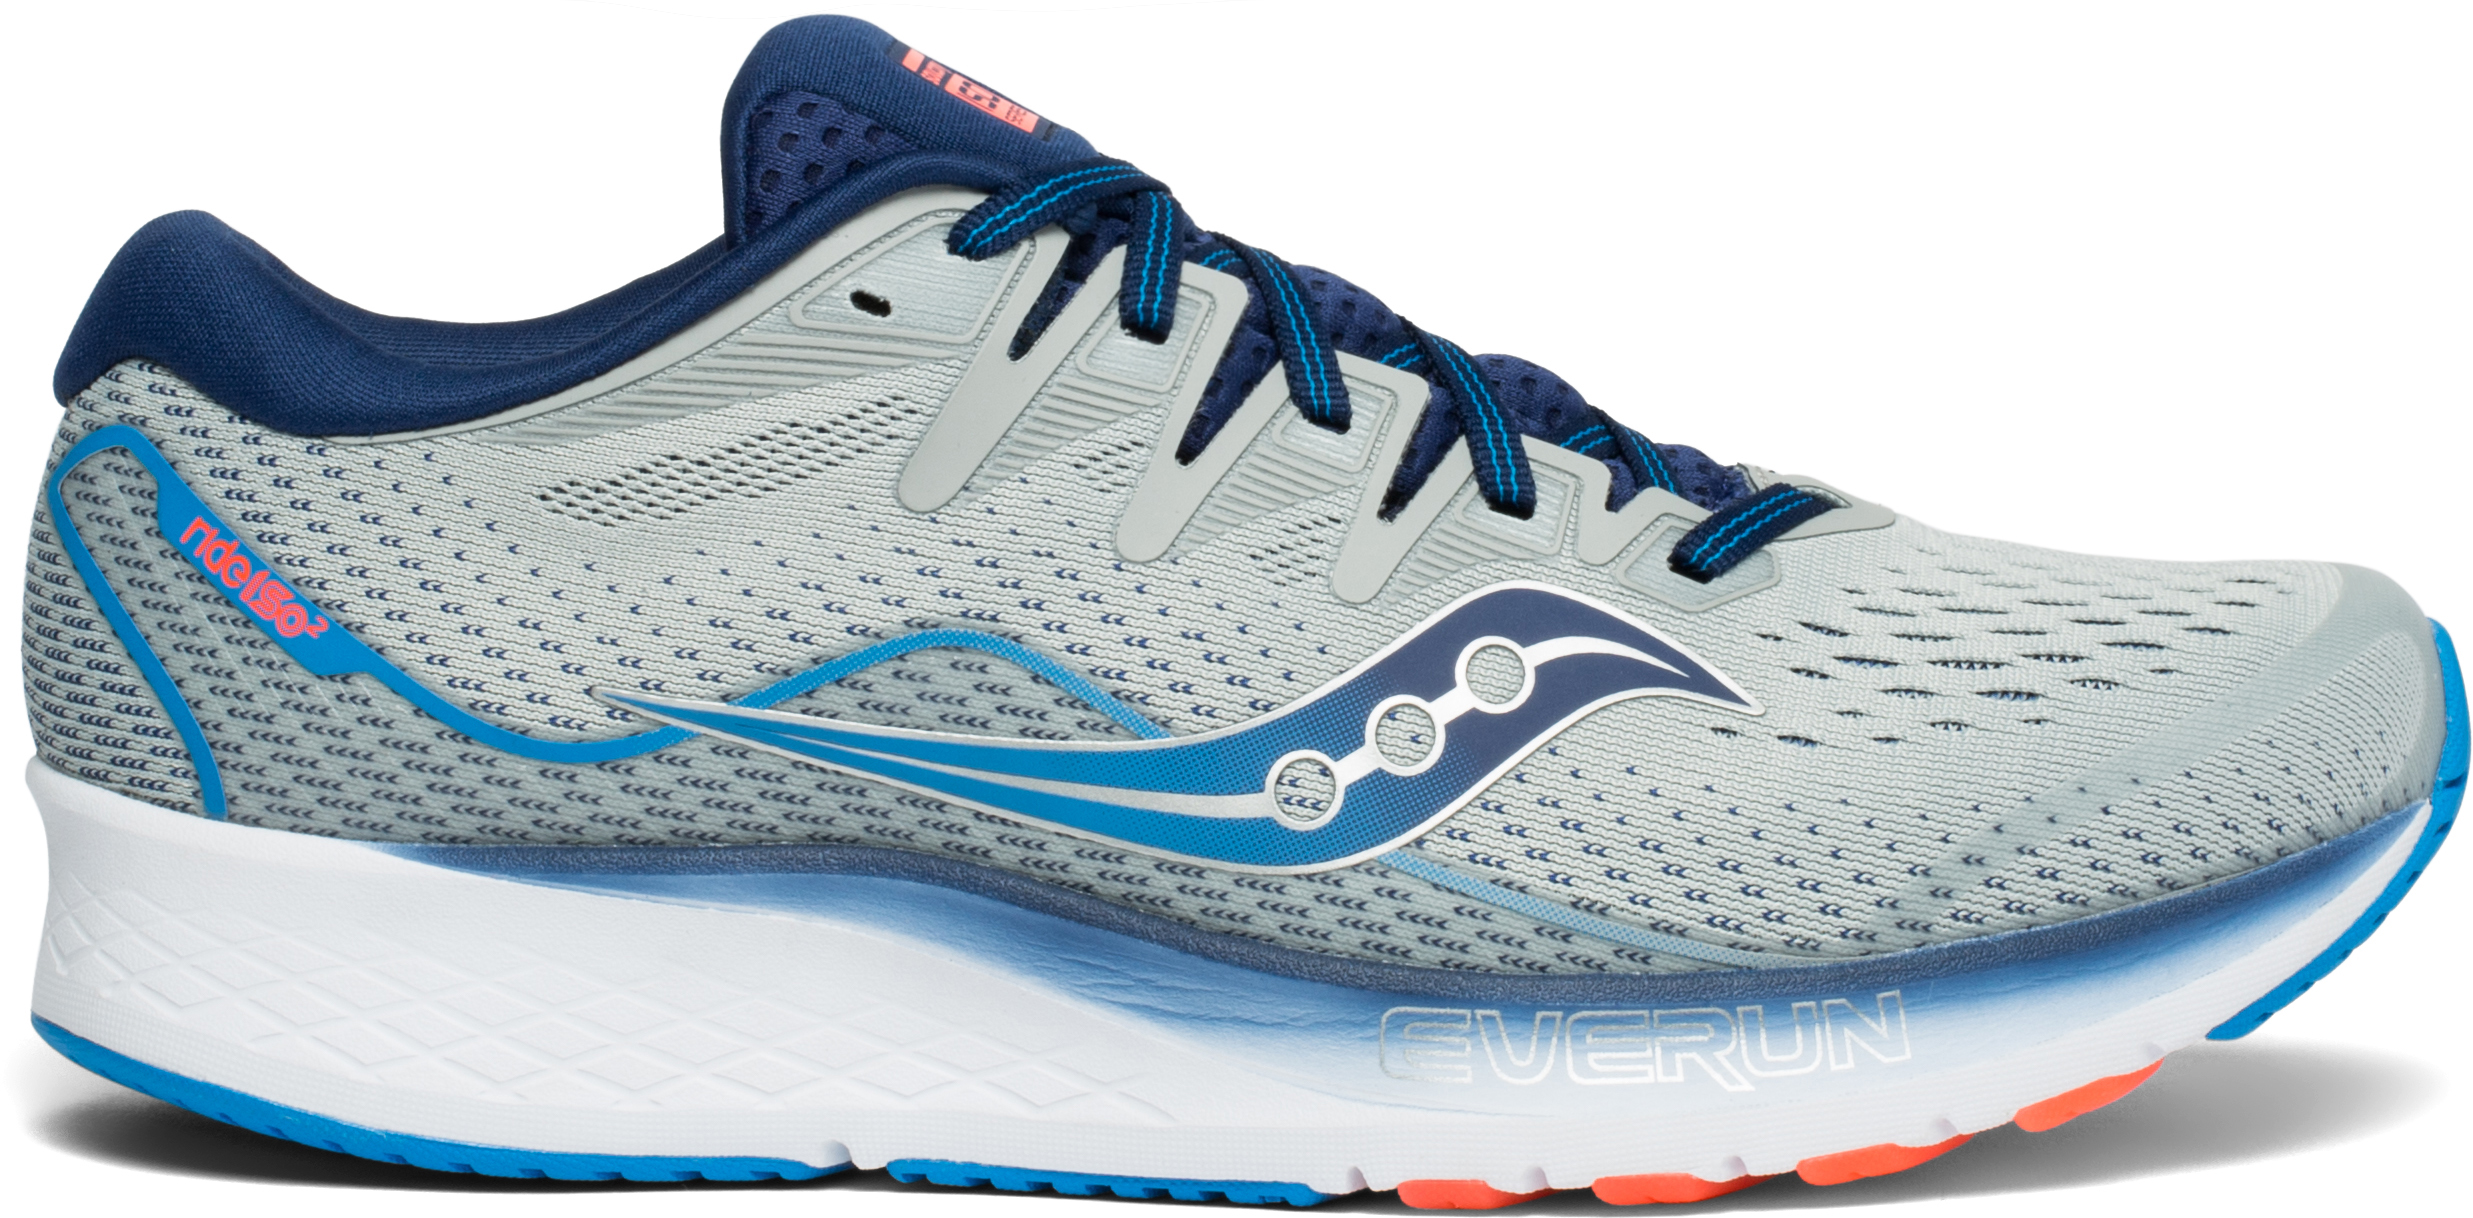 Saucony Ride ISO 2 Road Running Shoes